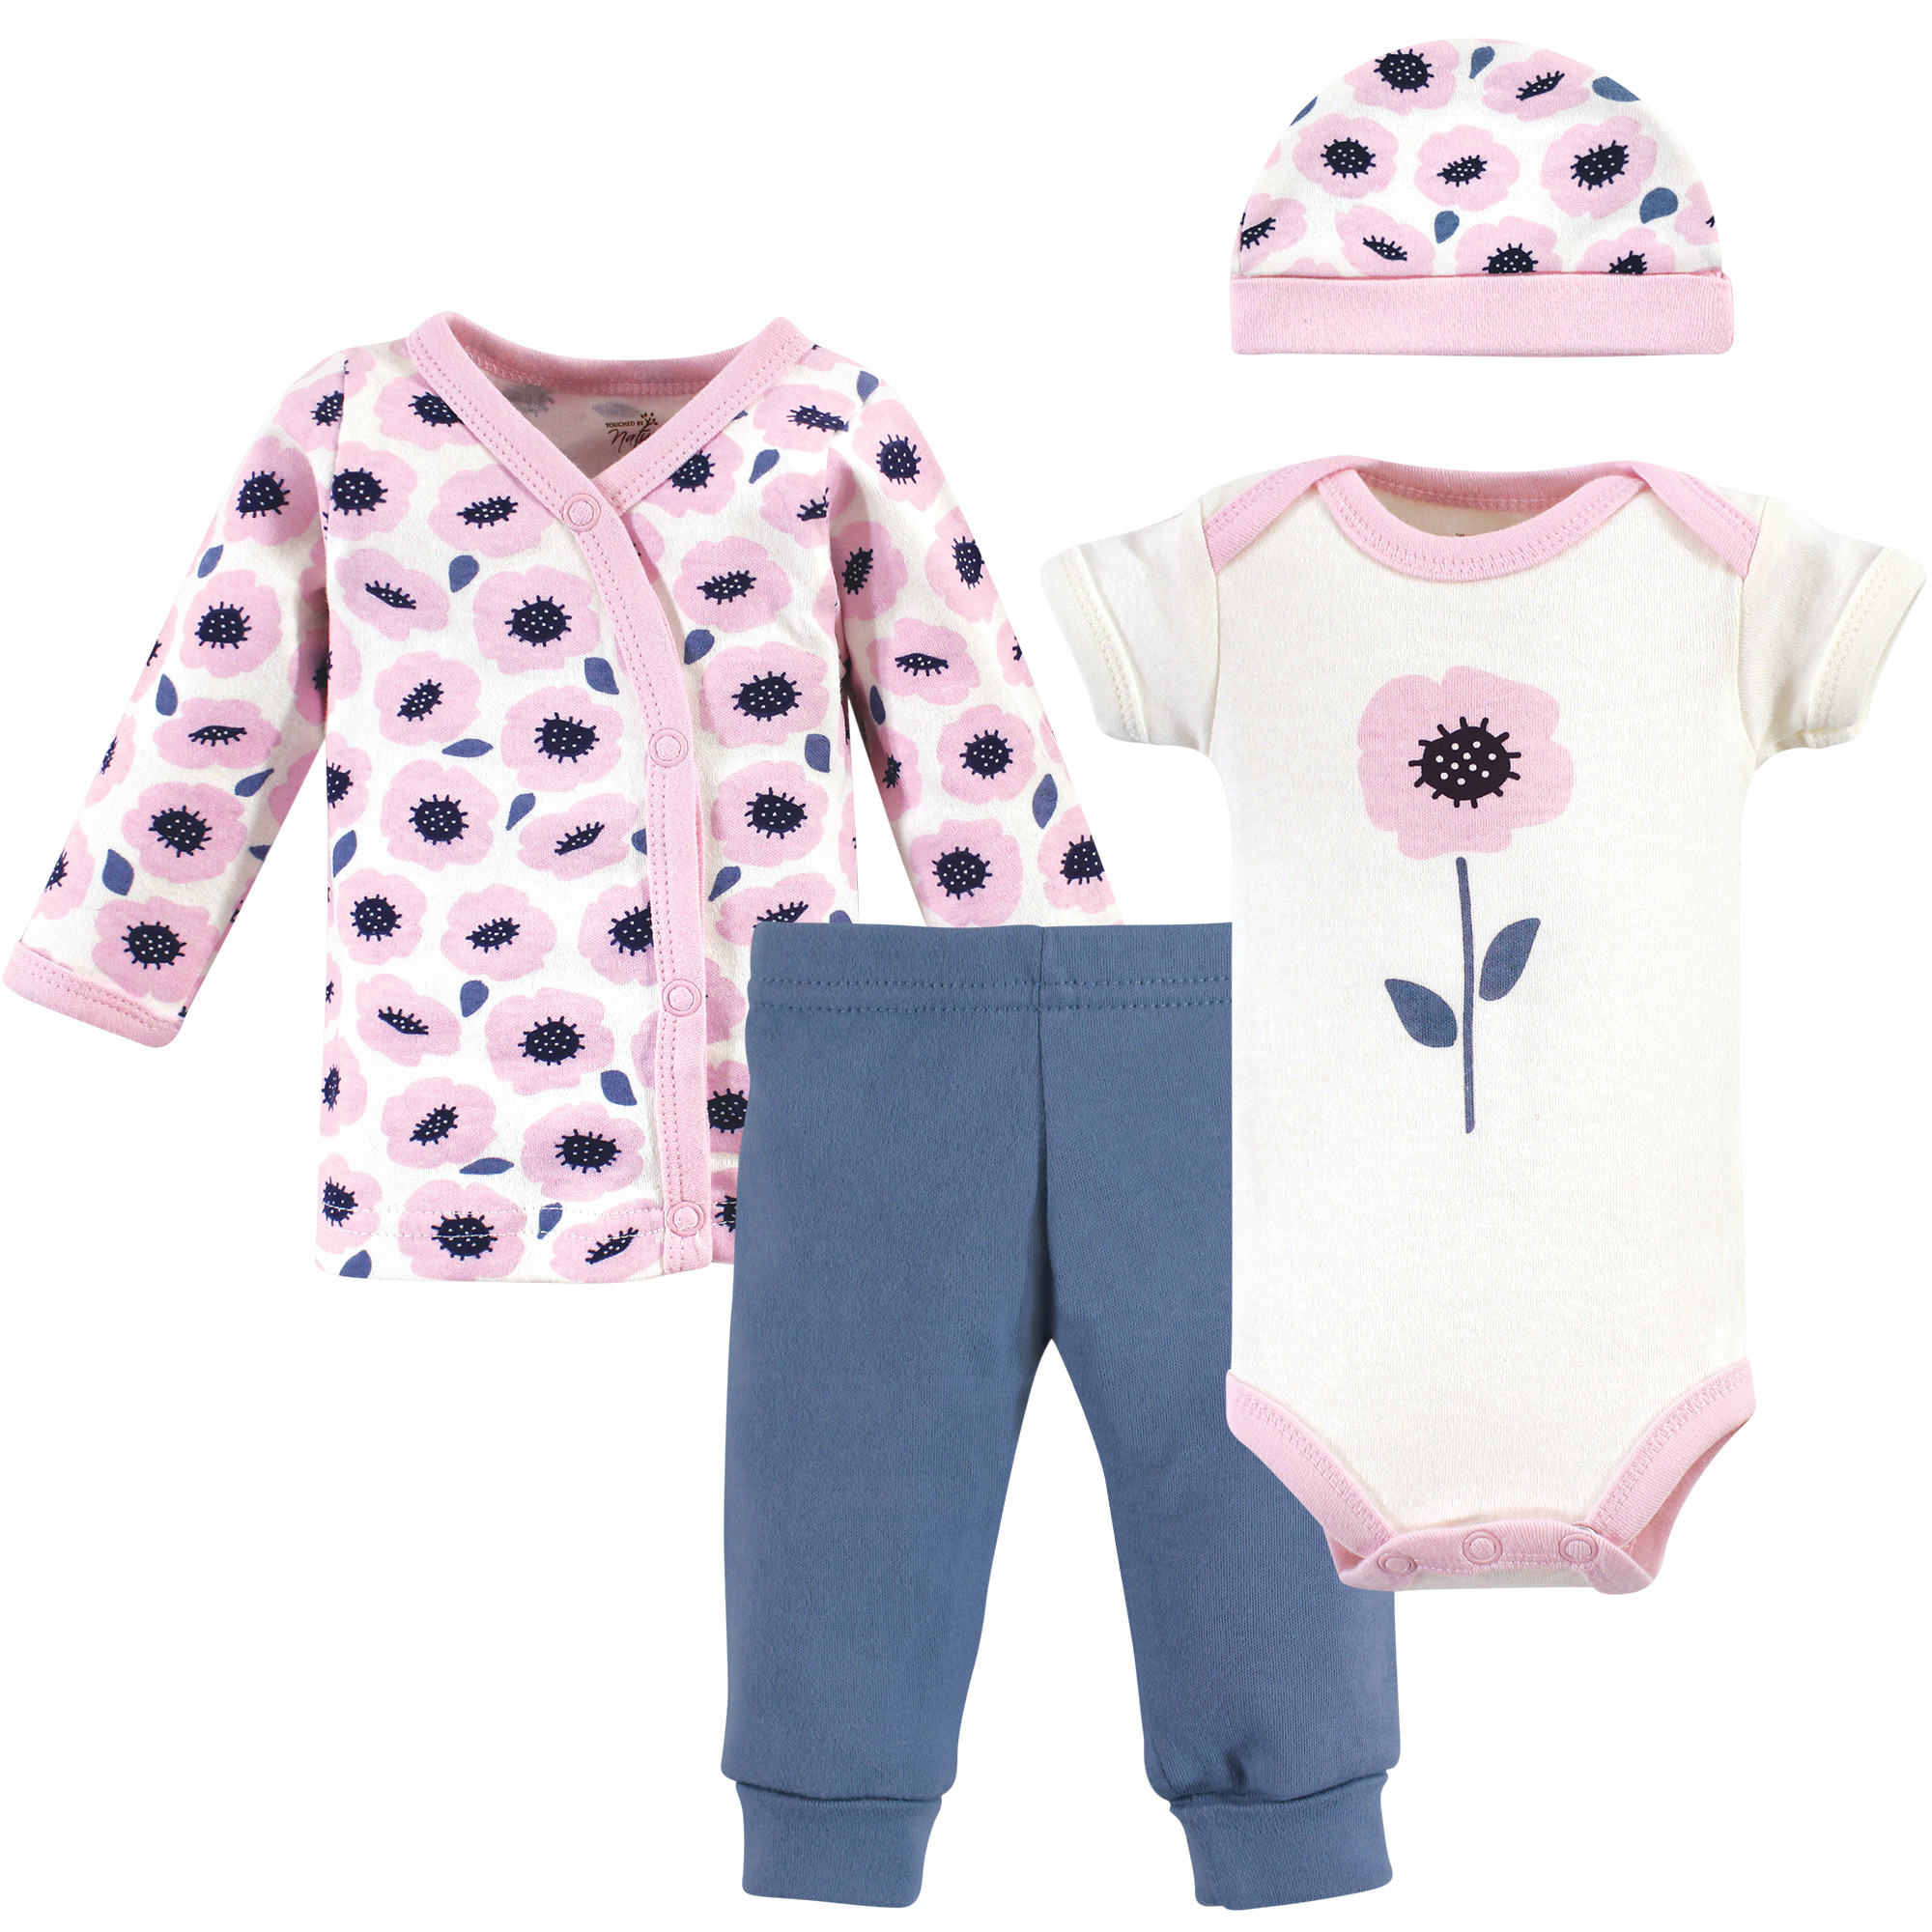 706528a8c BabyVision | Organic clothing | Clothing sets | Affordable Infant ...